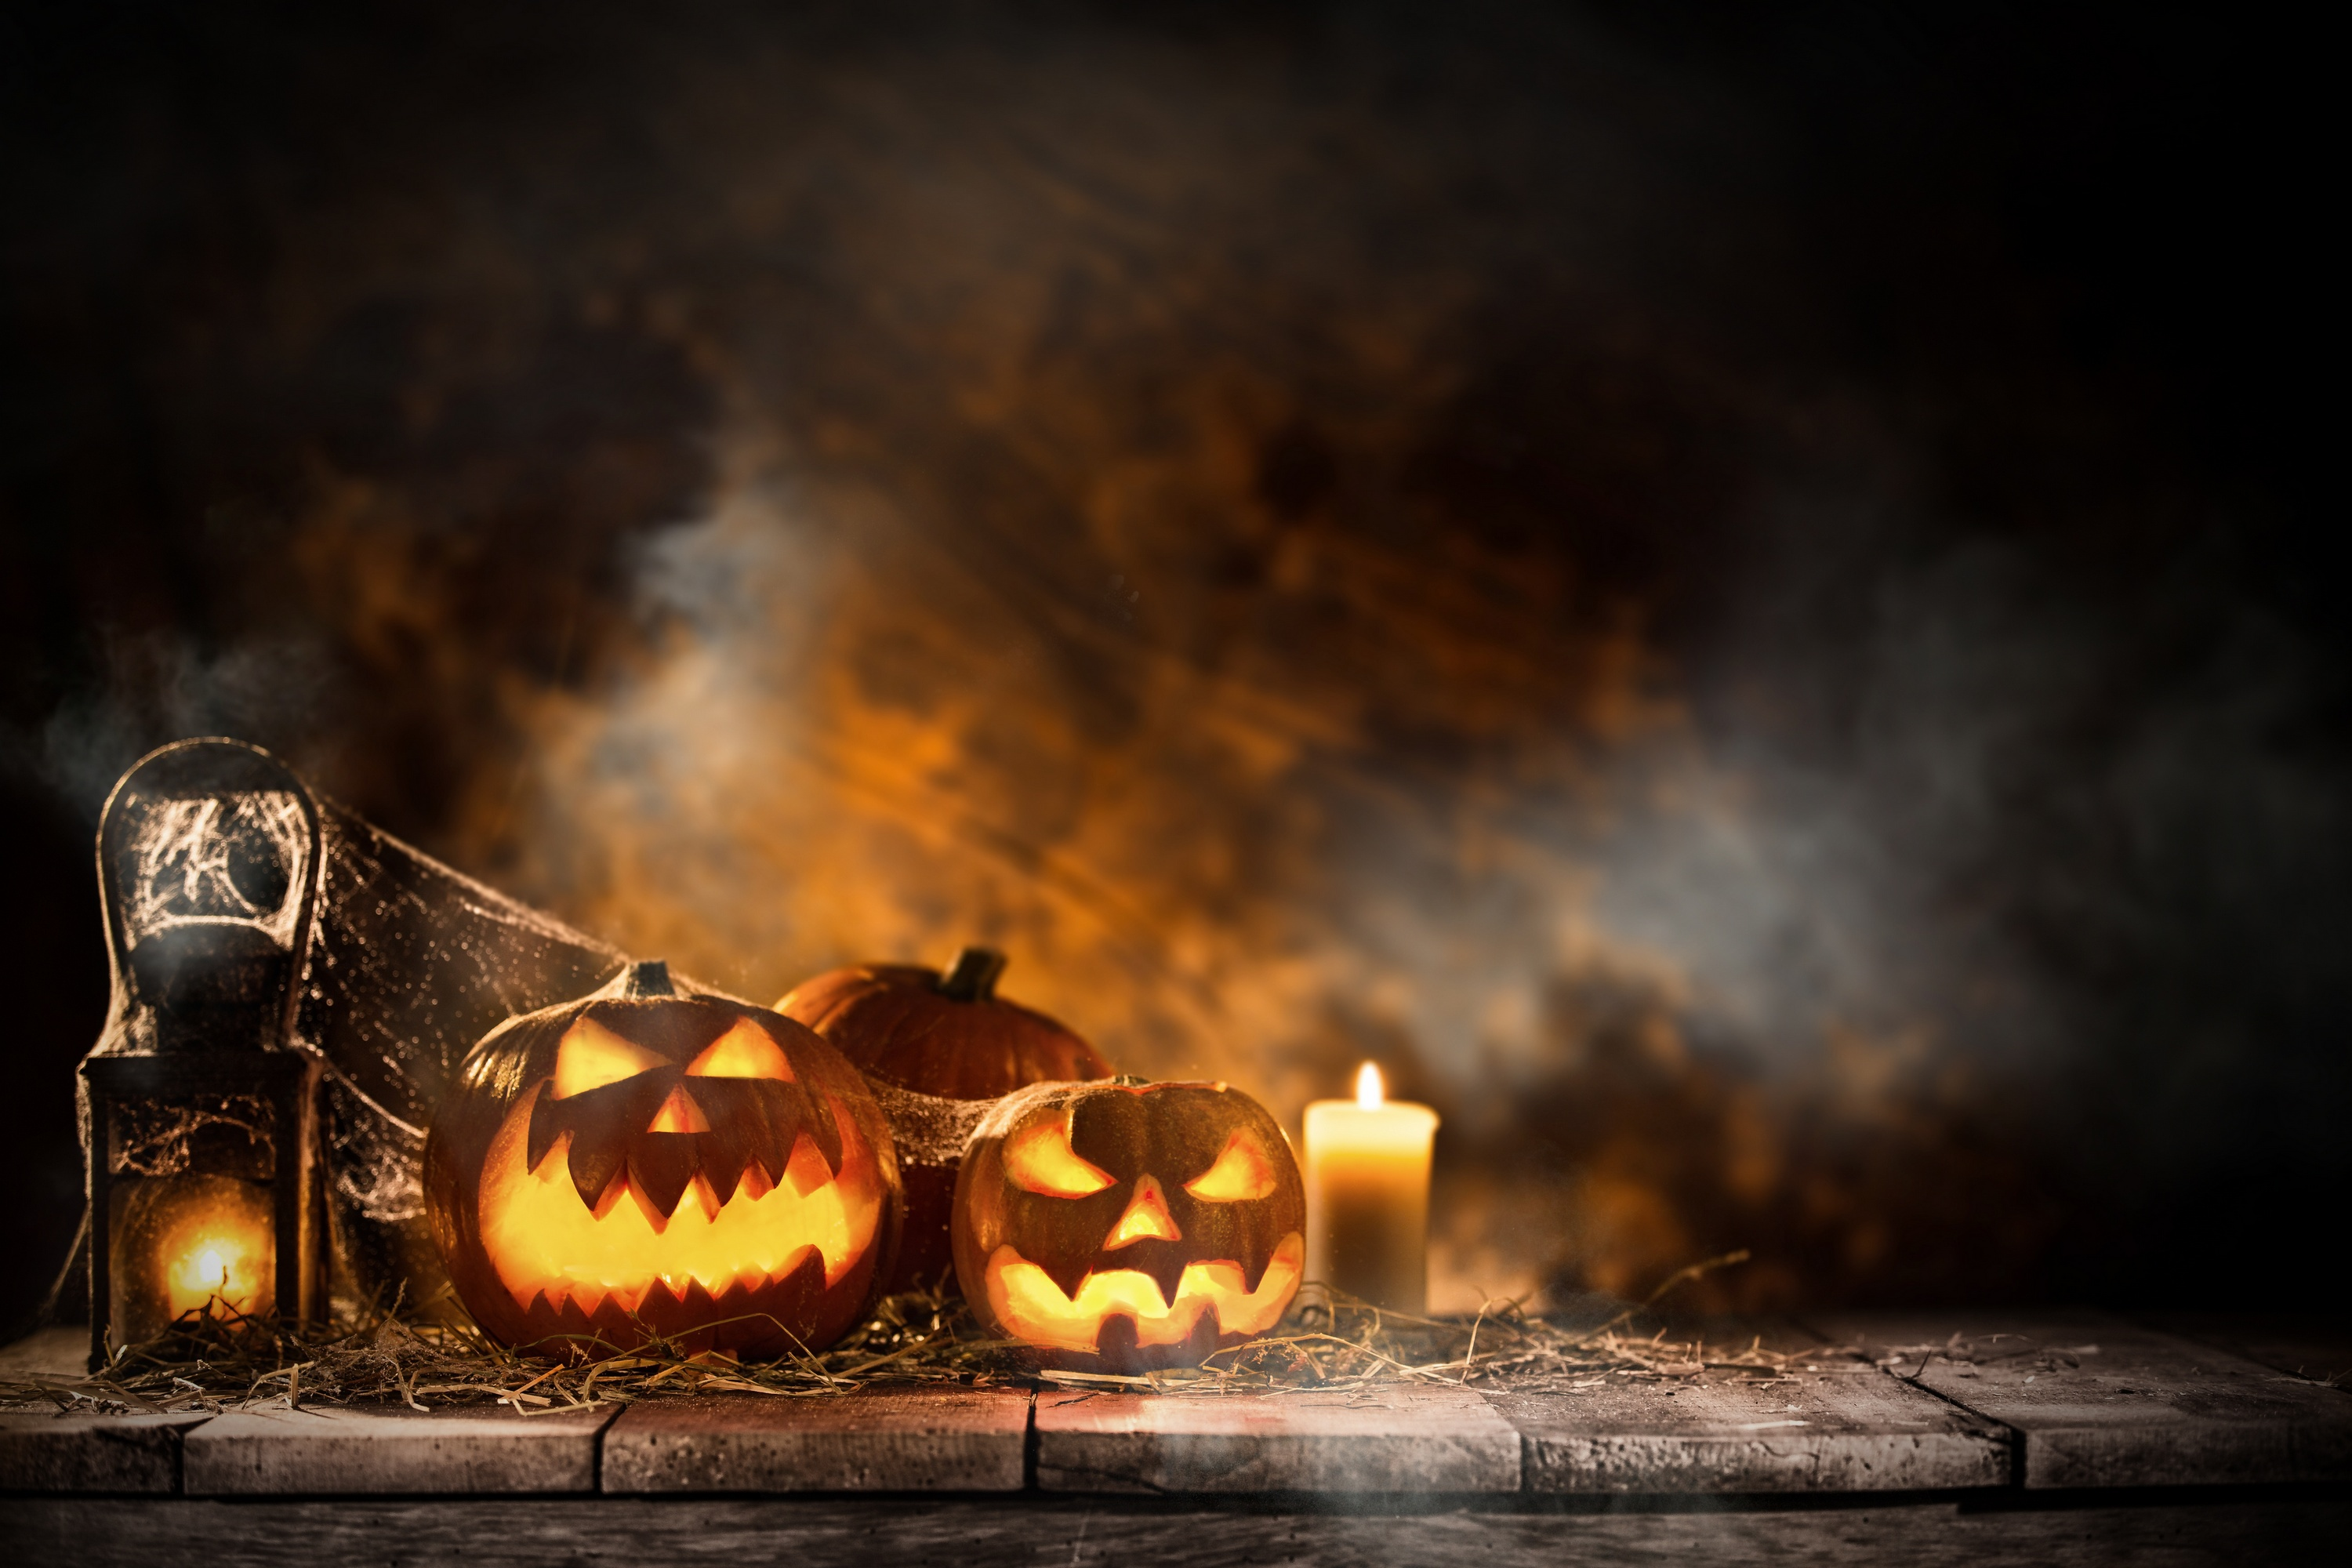 Fall Wallpaper With Pumpkins Halloween Candle And Pumpkins Hd Celebrations 4k